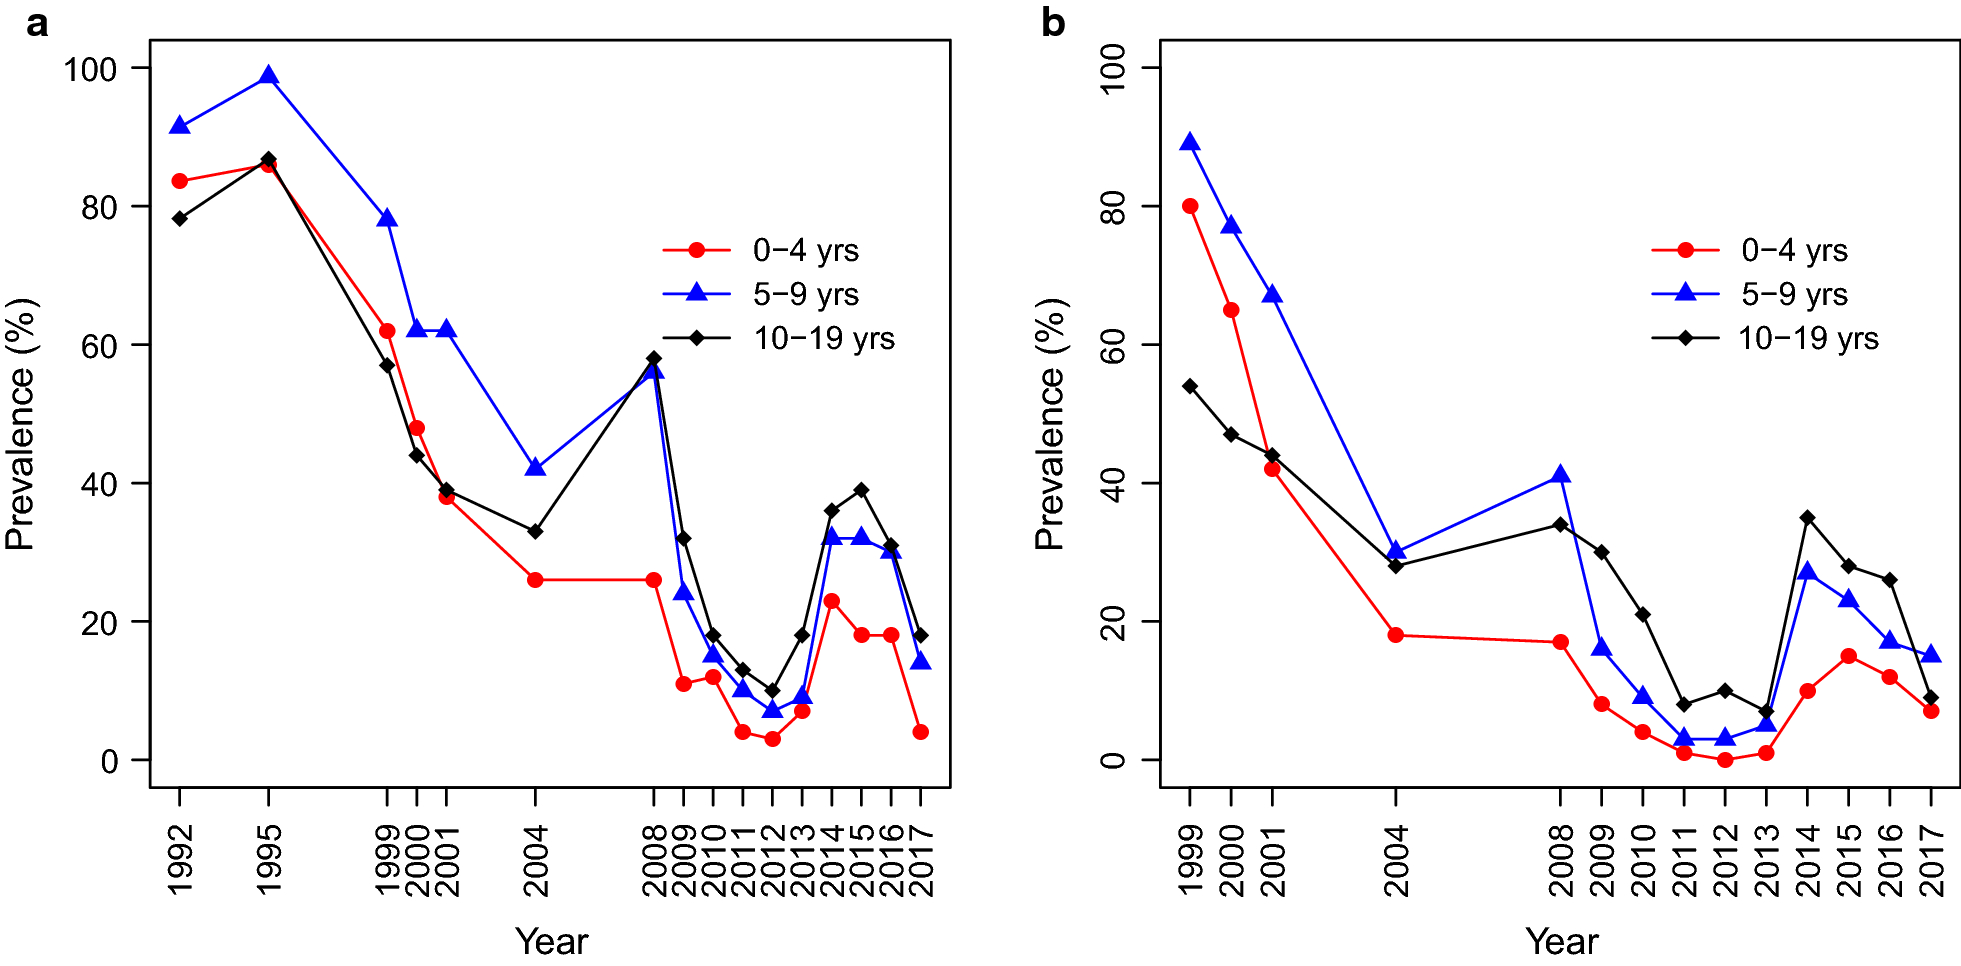 Trends Of Plasmodium Falciparum Prevalence In Two Communities Electric Circuits And Fields Nuffield Foundation Fig 2